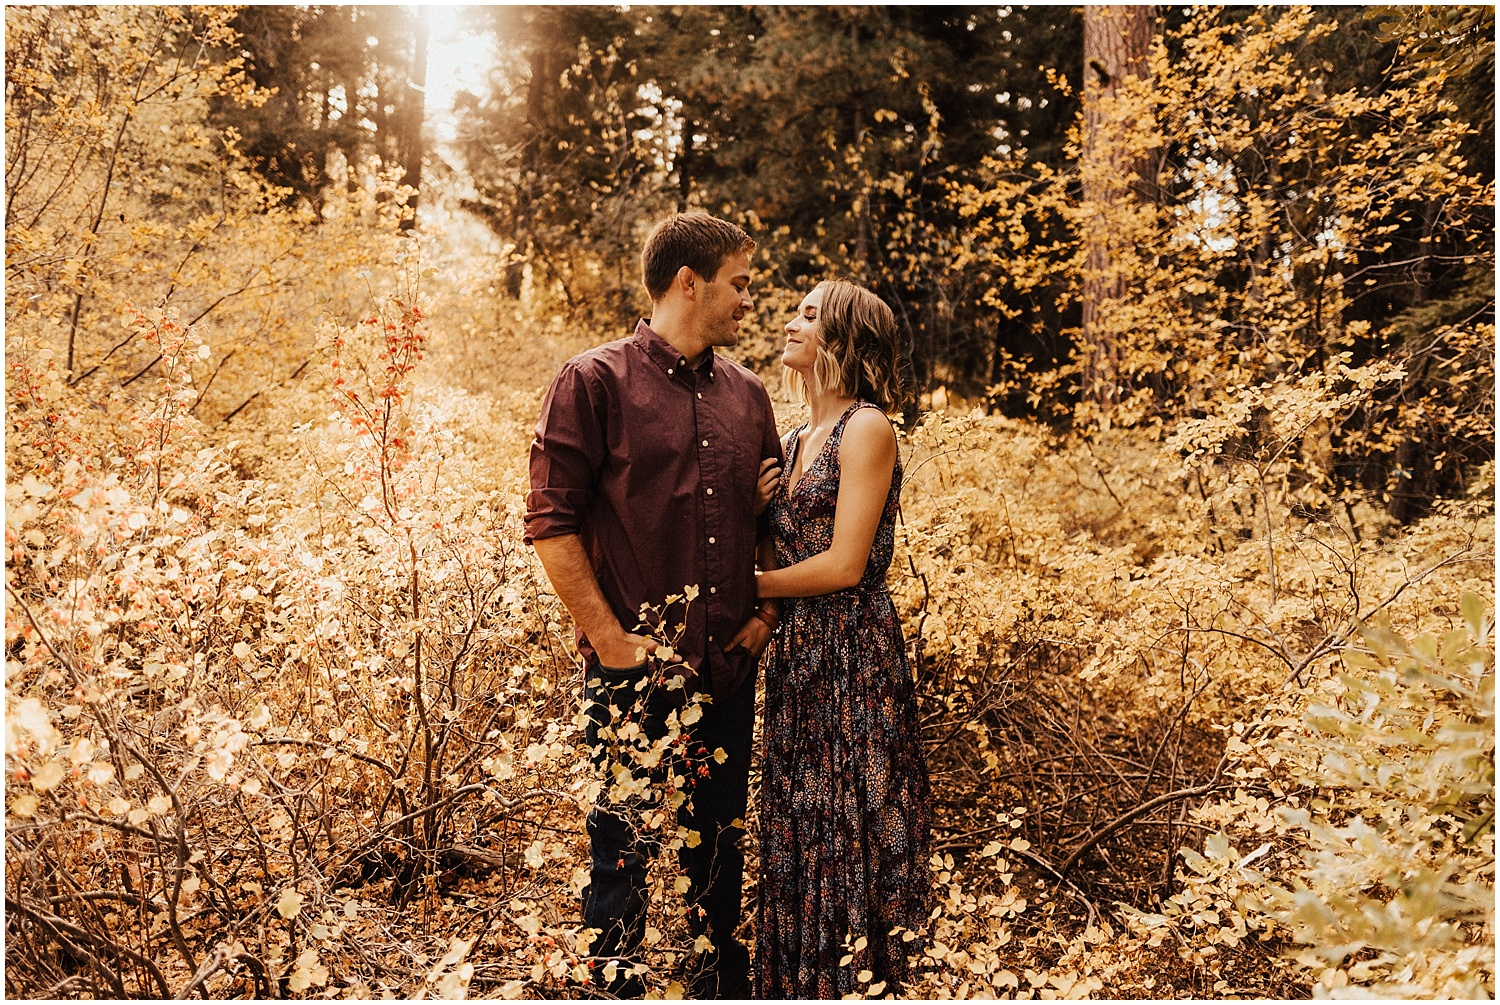 sunrise-mountain-engagement-session-boise-idaho26.jpg